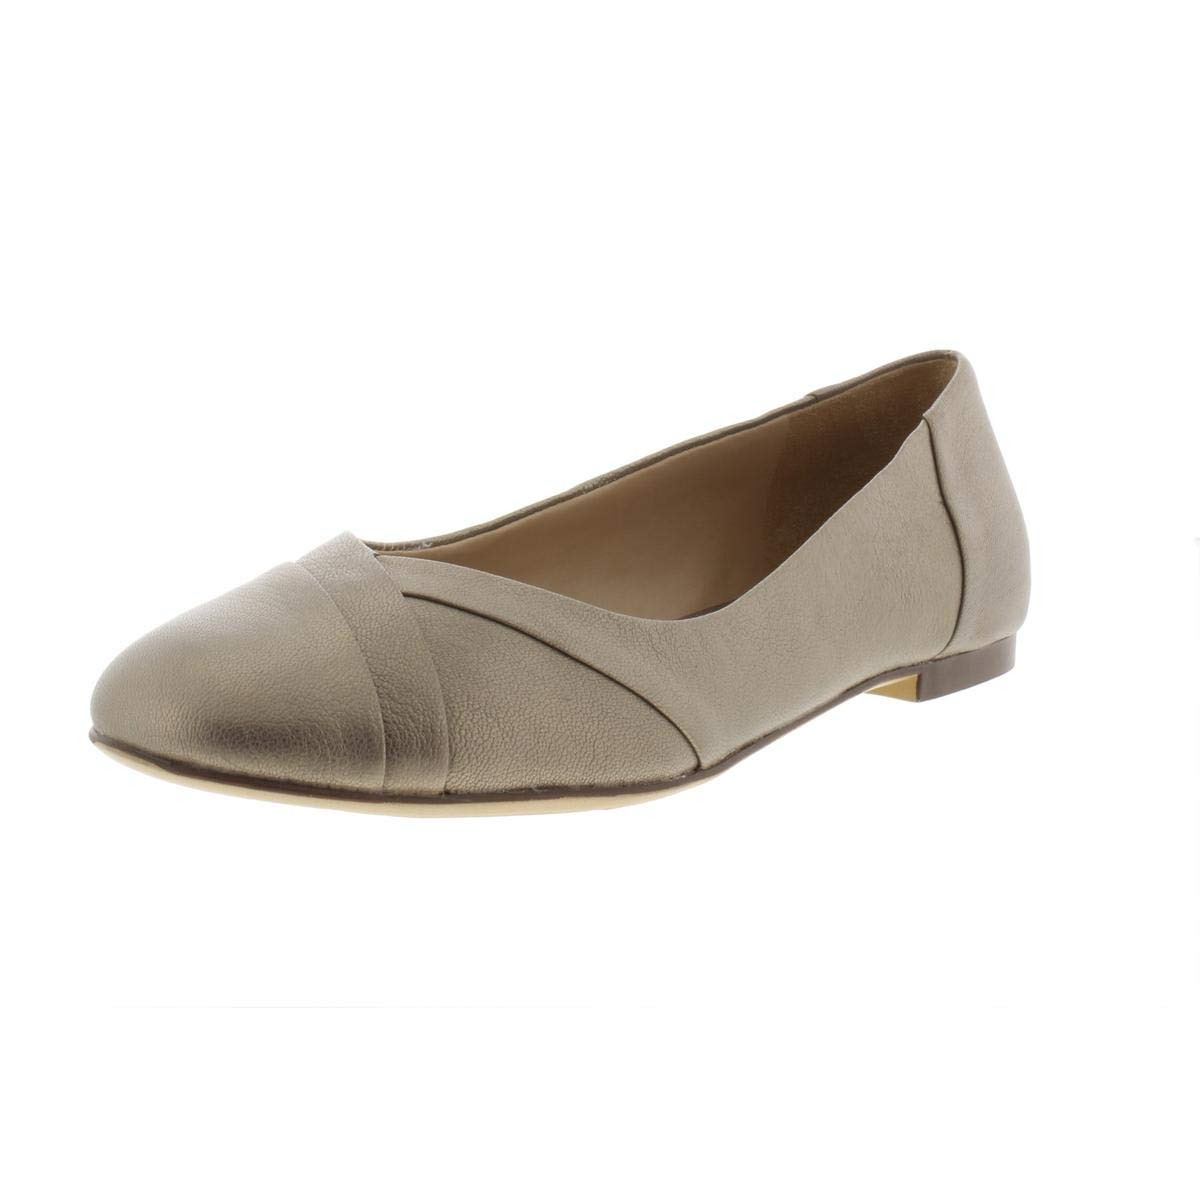 Zinc Leather Naturalizer Womens Gilly Flat